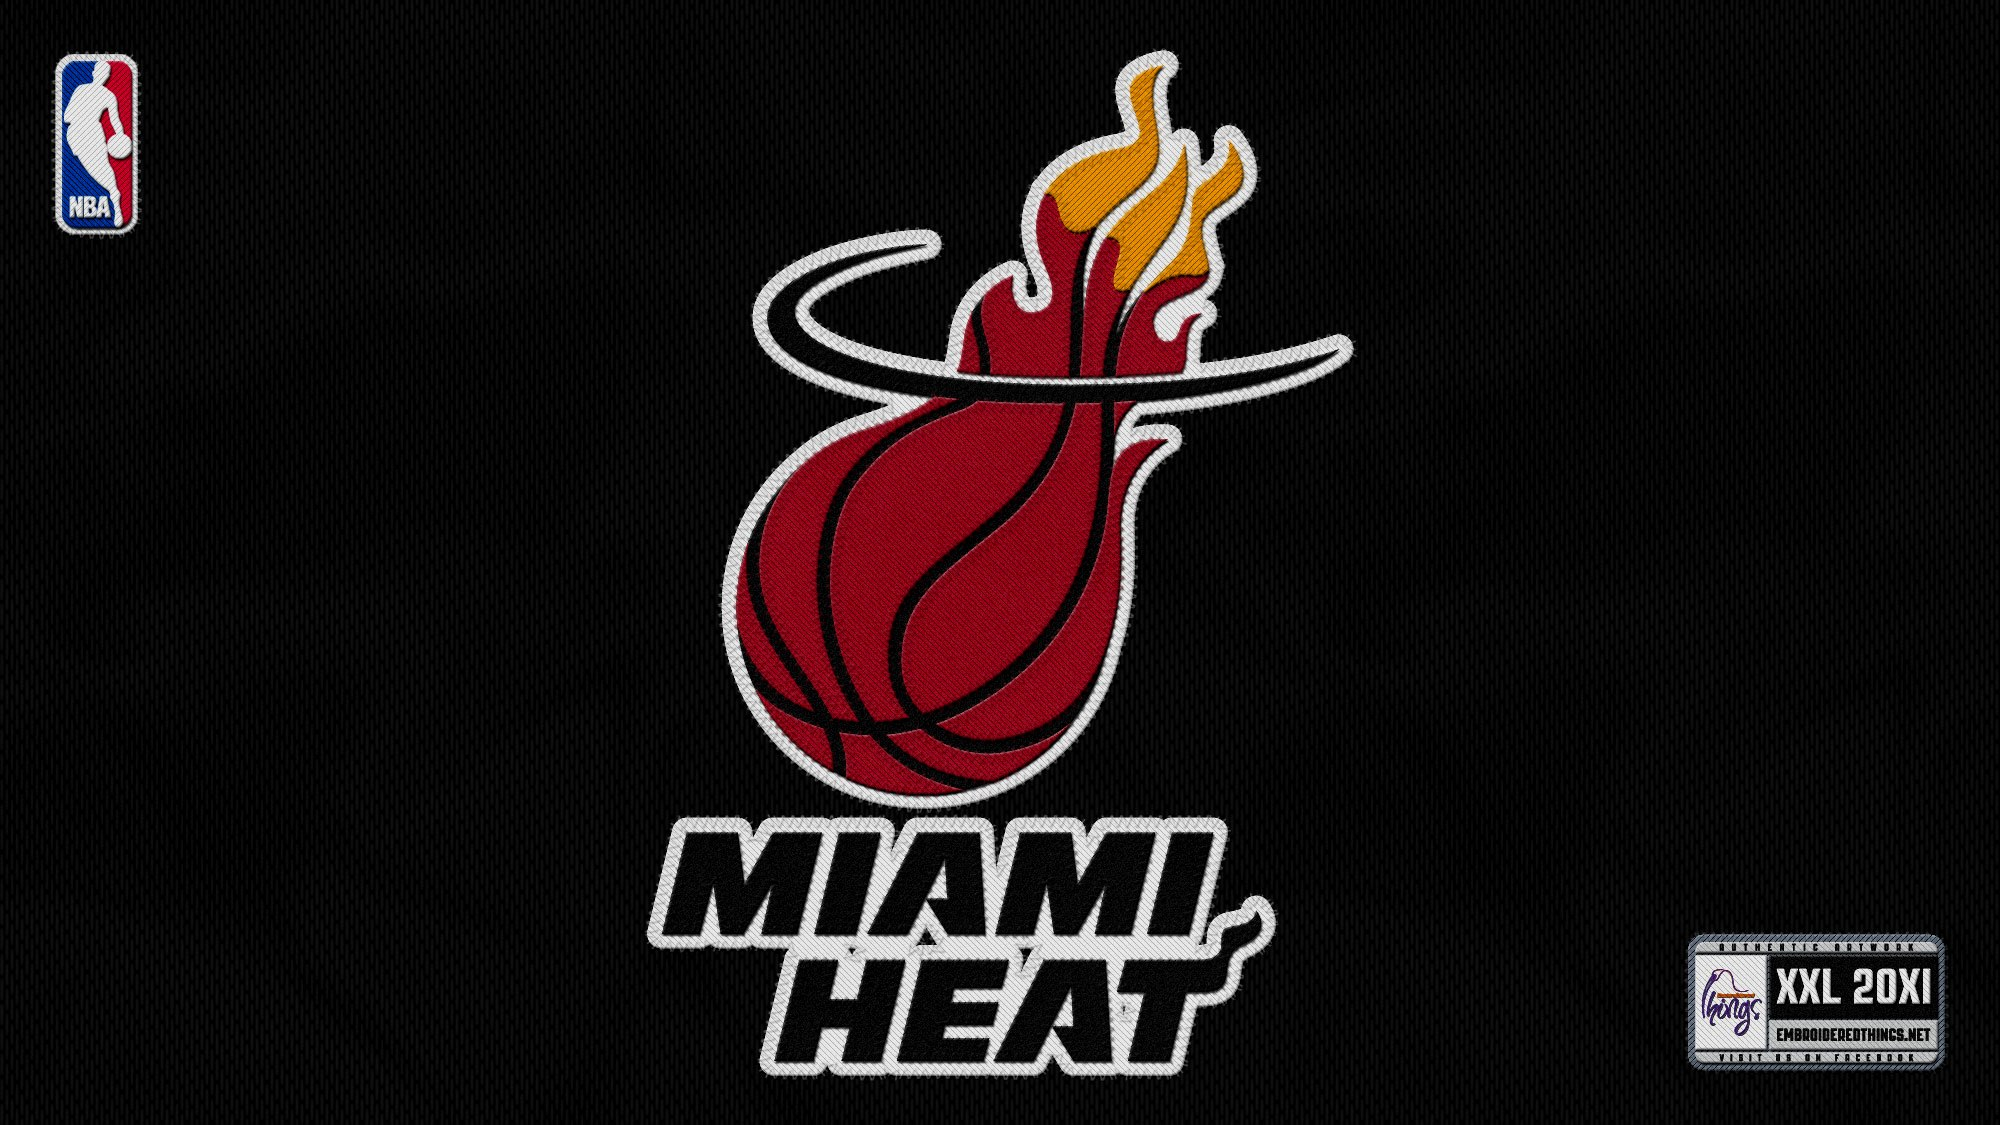 Miami Heat Wallpaper Wallpapers For Free Download GZH R